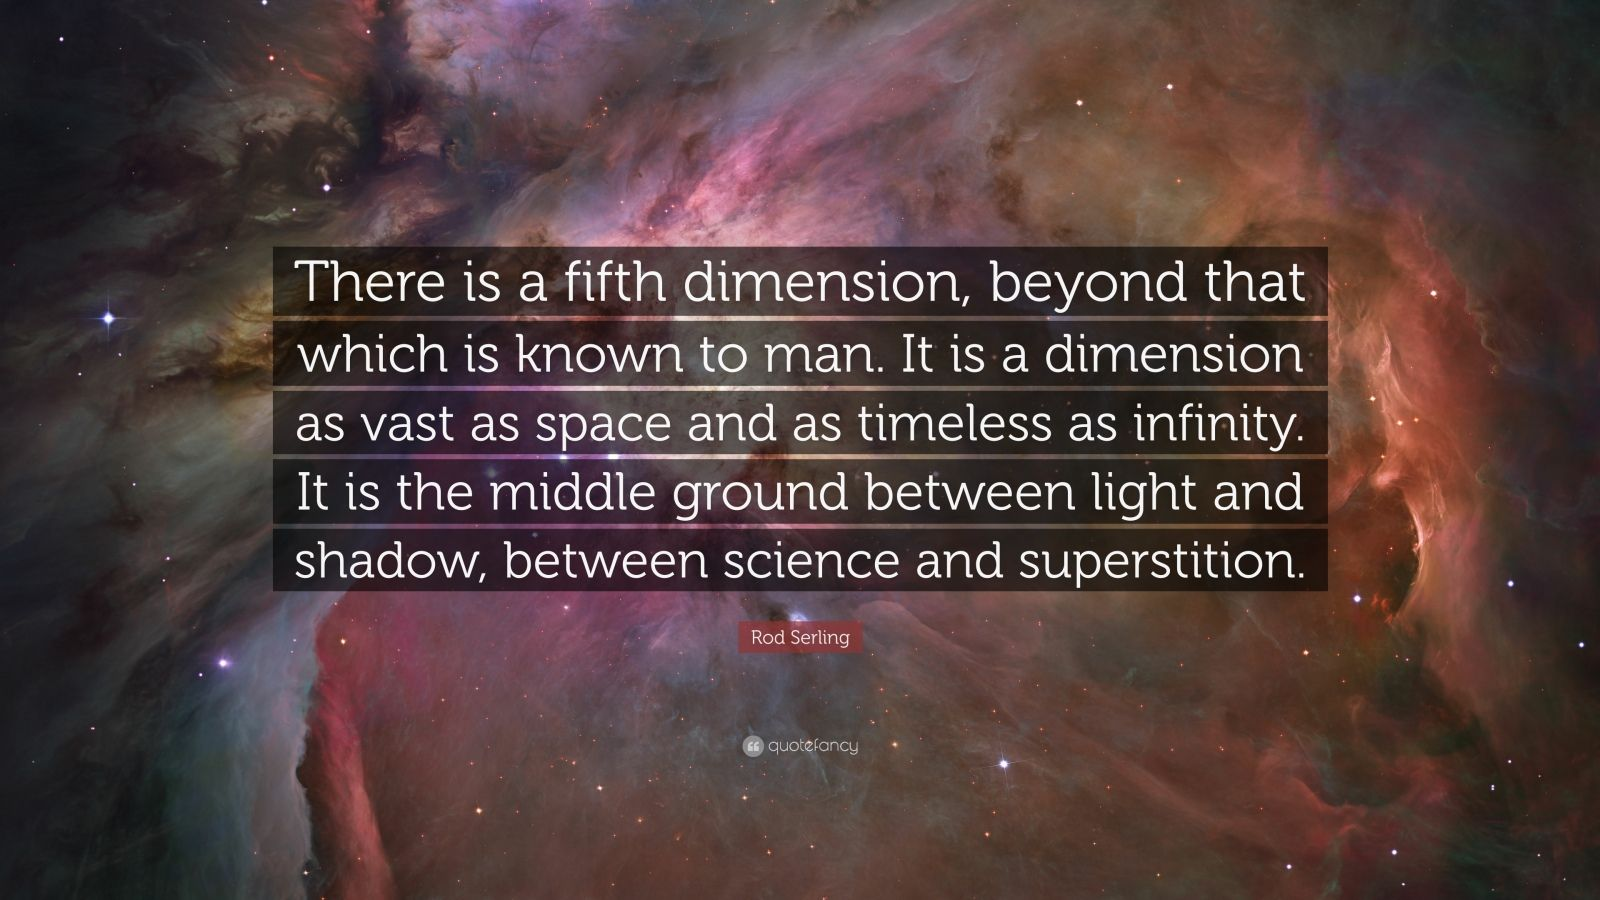 """Rod Serling Quote: """"There is a fifth dimension, beyond that which is known to man. It is a dimension as vast as space and as timeless as infinity. It is the middle ground between light and shadow, between science and superstition."""""""